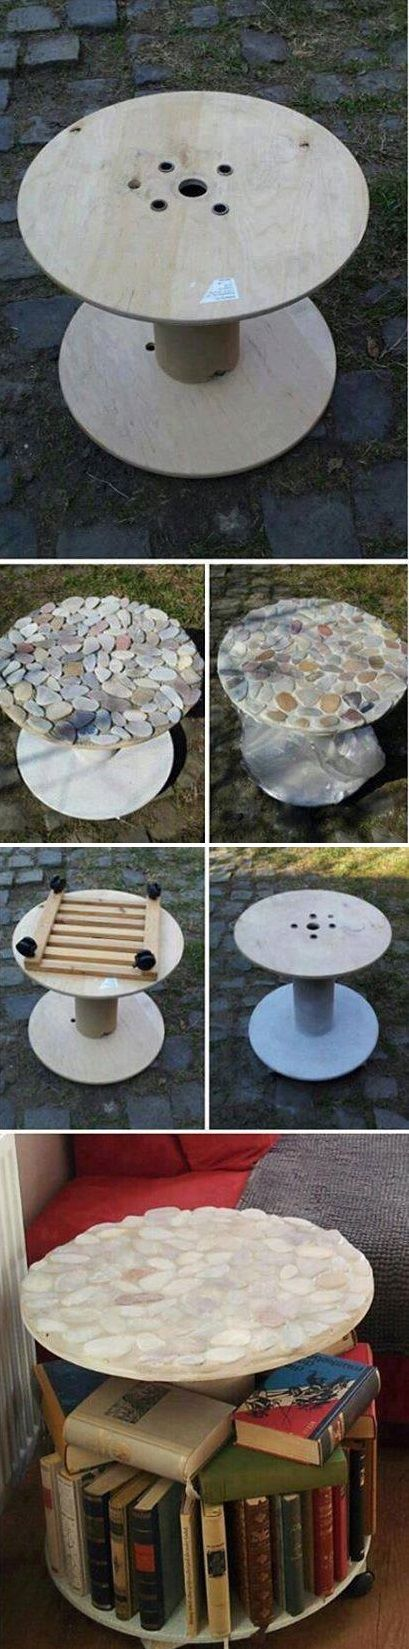 Reuse Cable Reels Spools Beautiful Stone Cobble Mosaic Table For